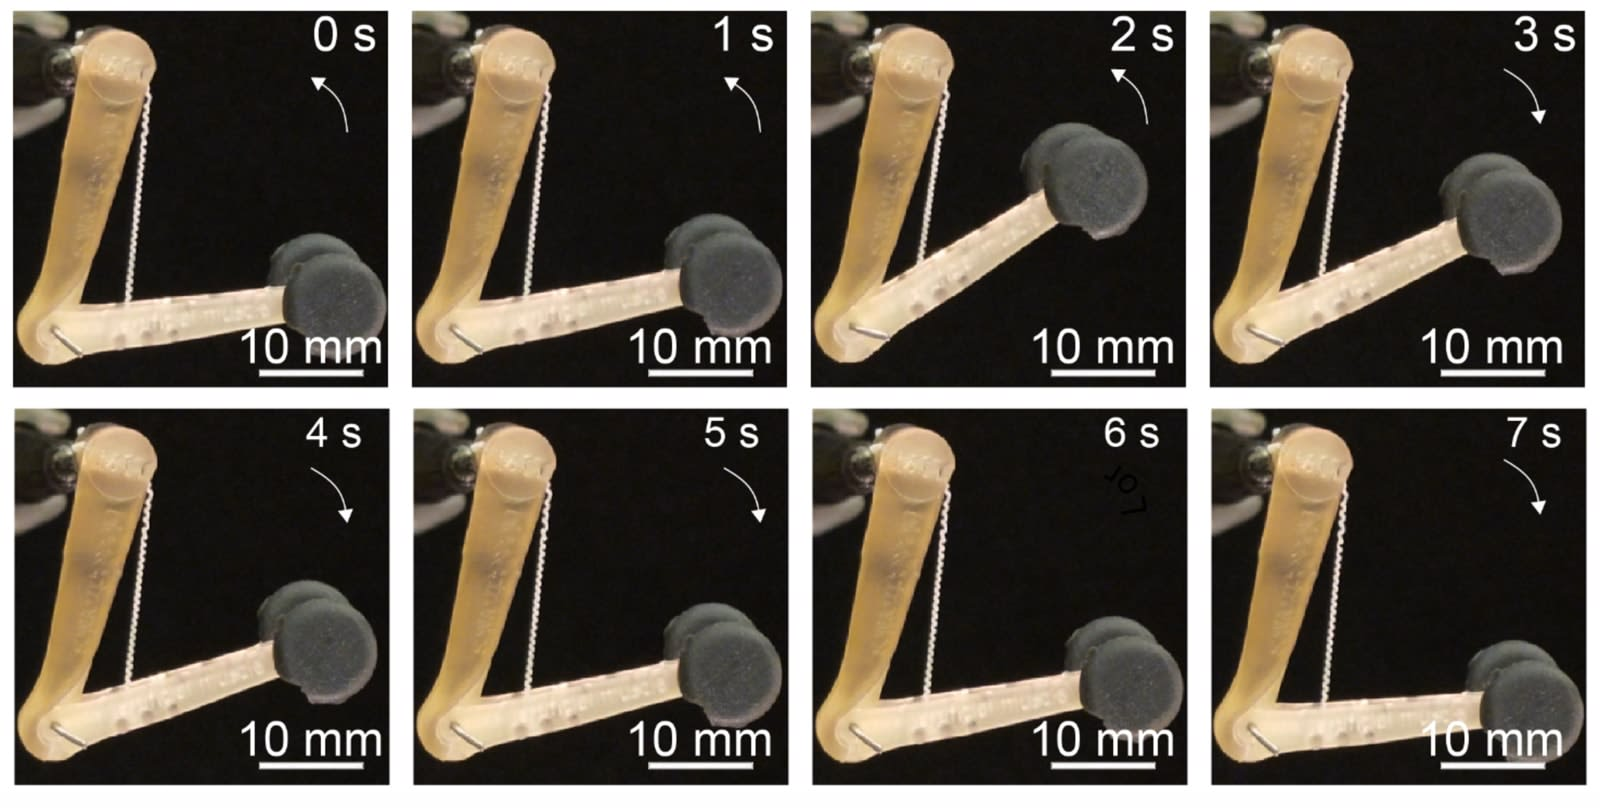 Synthetic fiber 'muscles' could lead to brawny robots and prosthetics